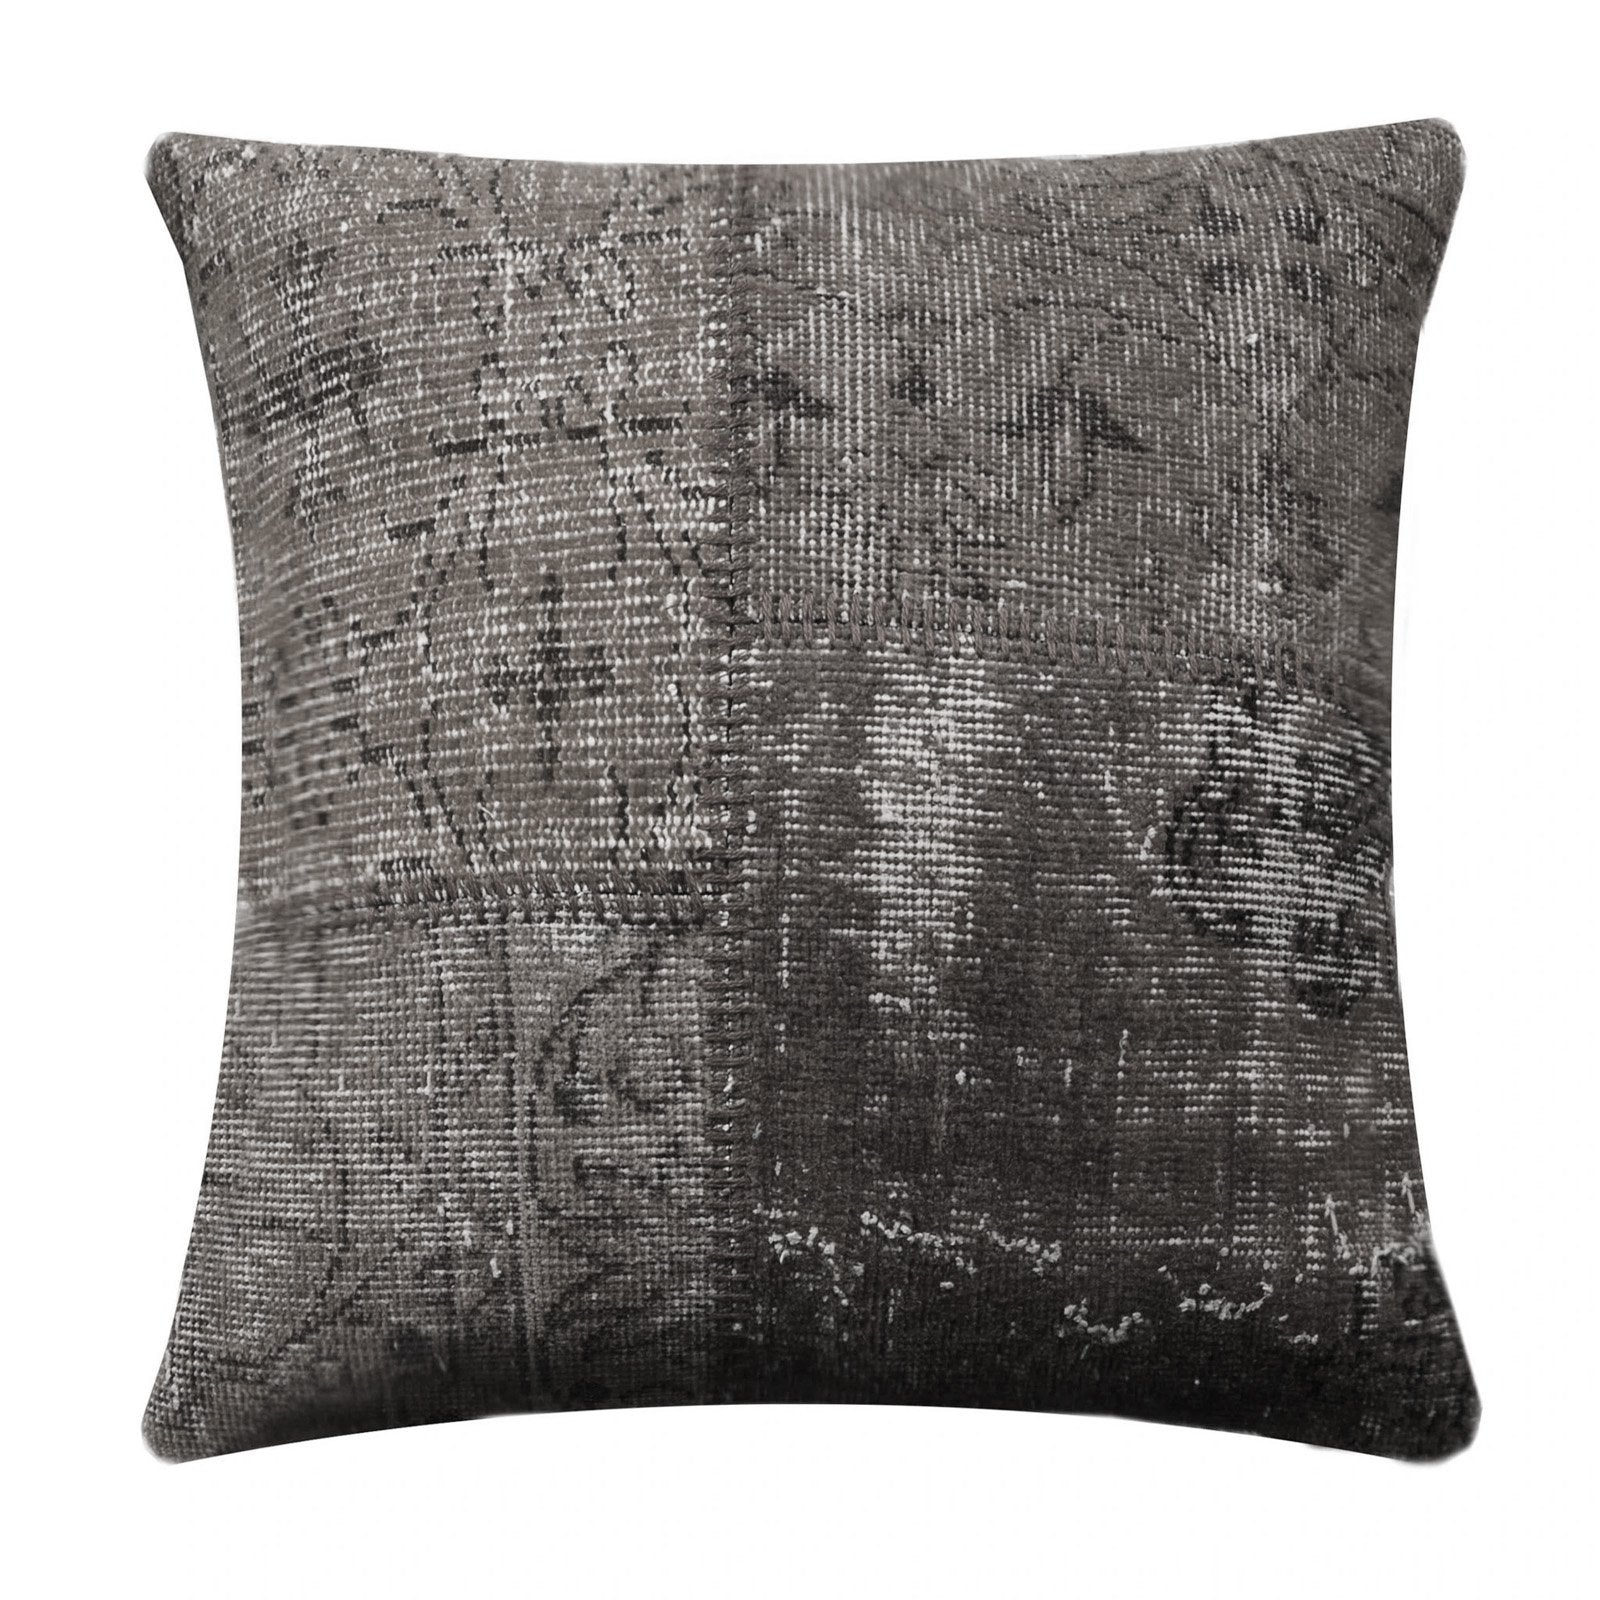 Hali CUSHION COVER 60X60 -  60x60 غطاء وسادة سم - Shop Online Furniture and Home Decor Store in Dubai, UAE at ebarza